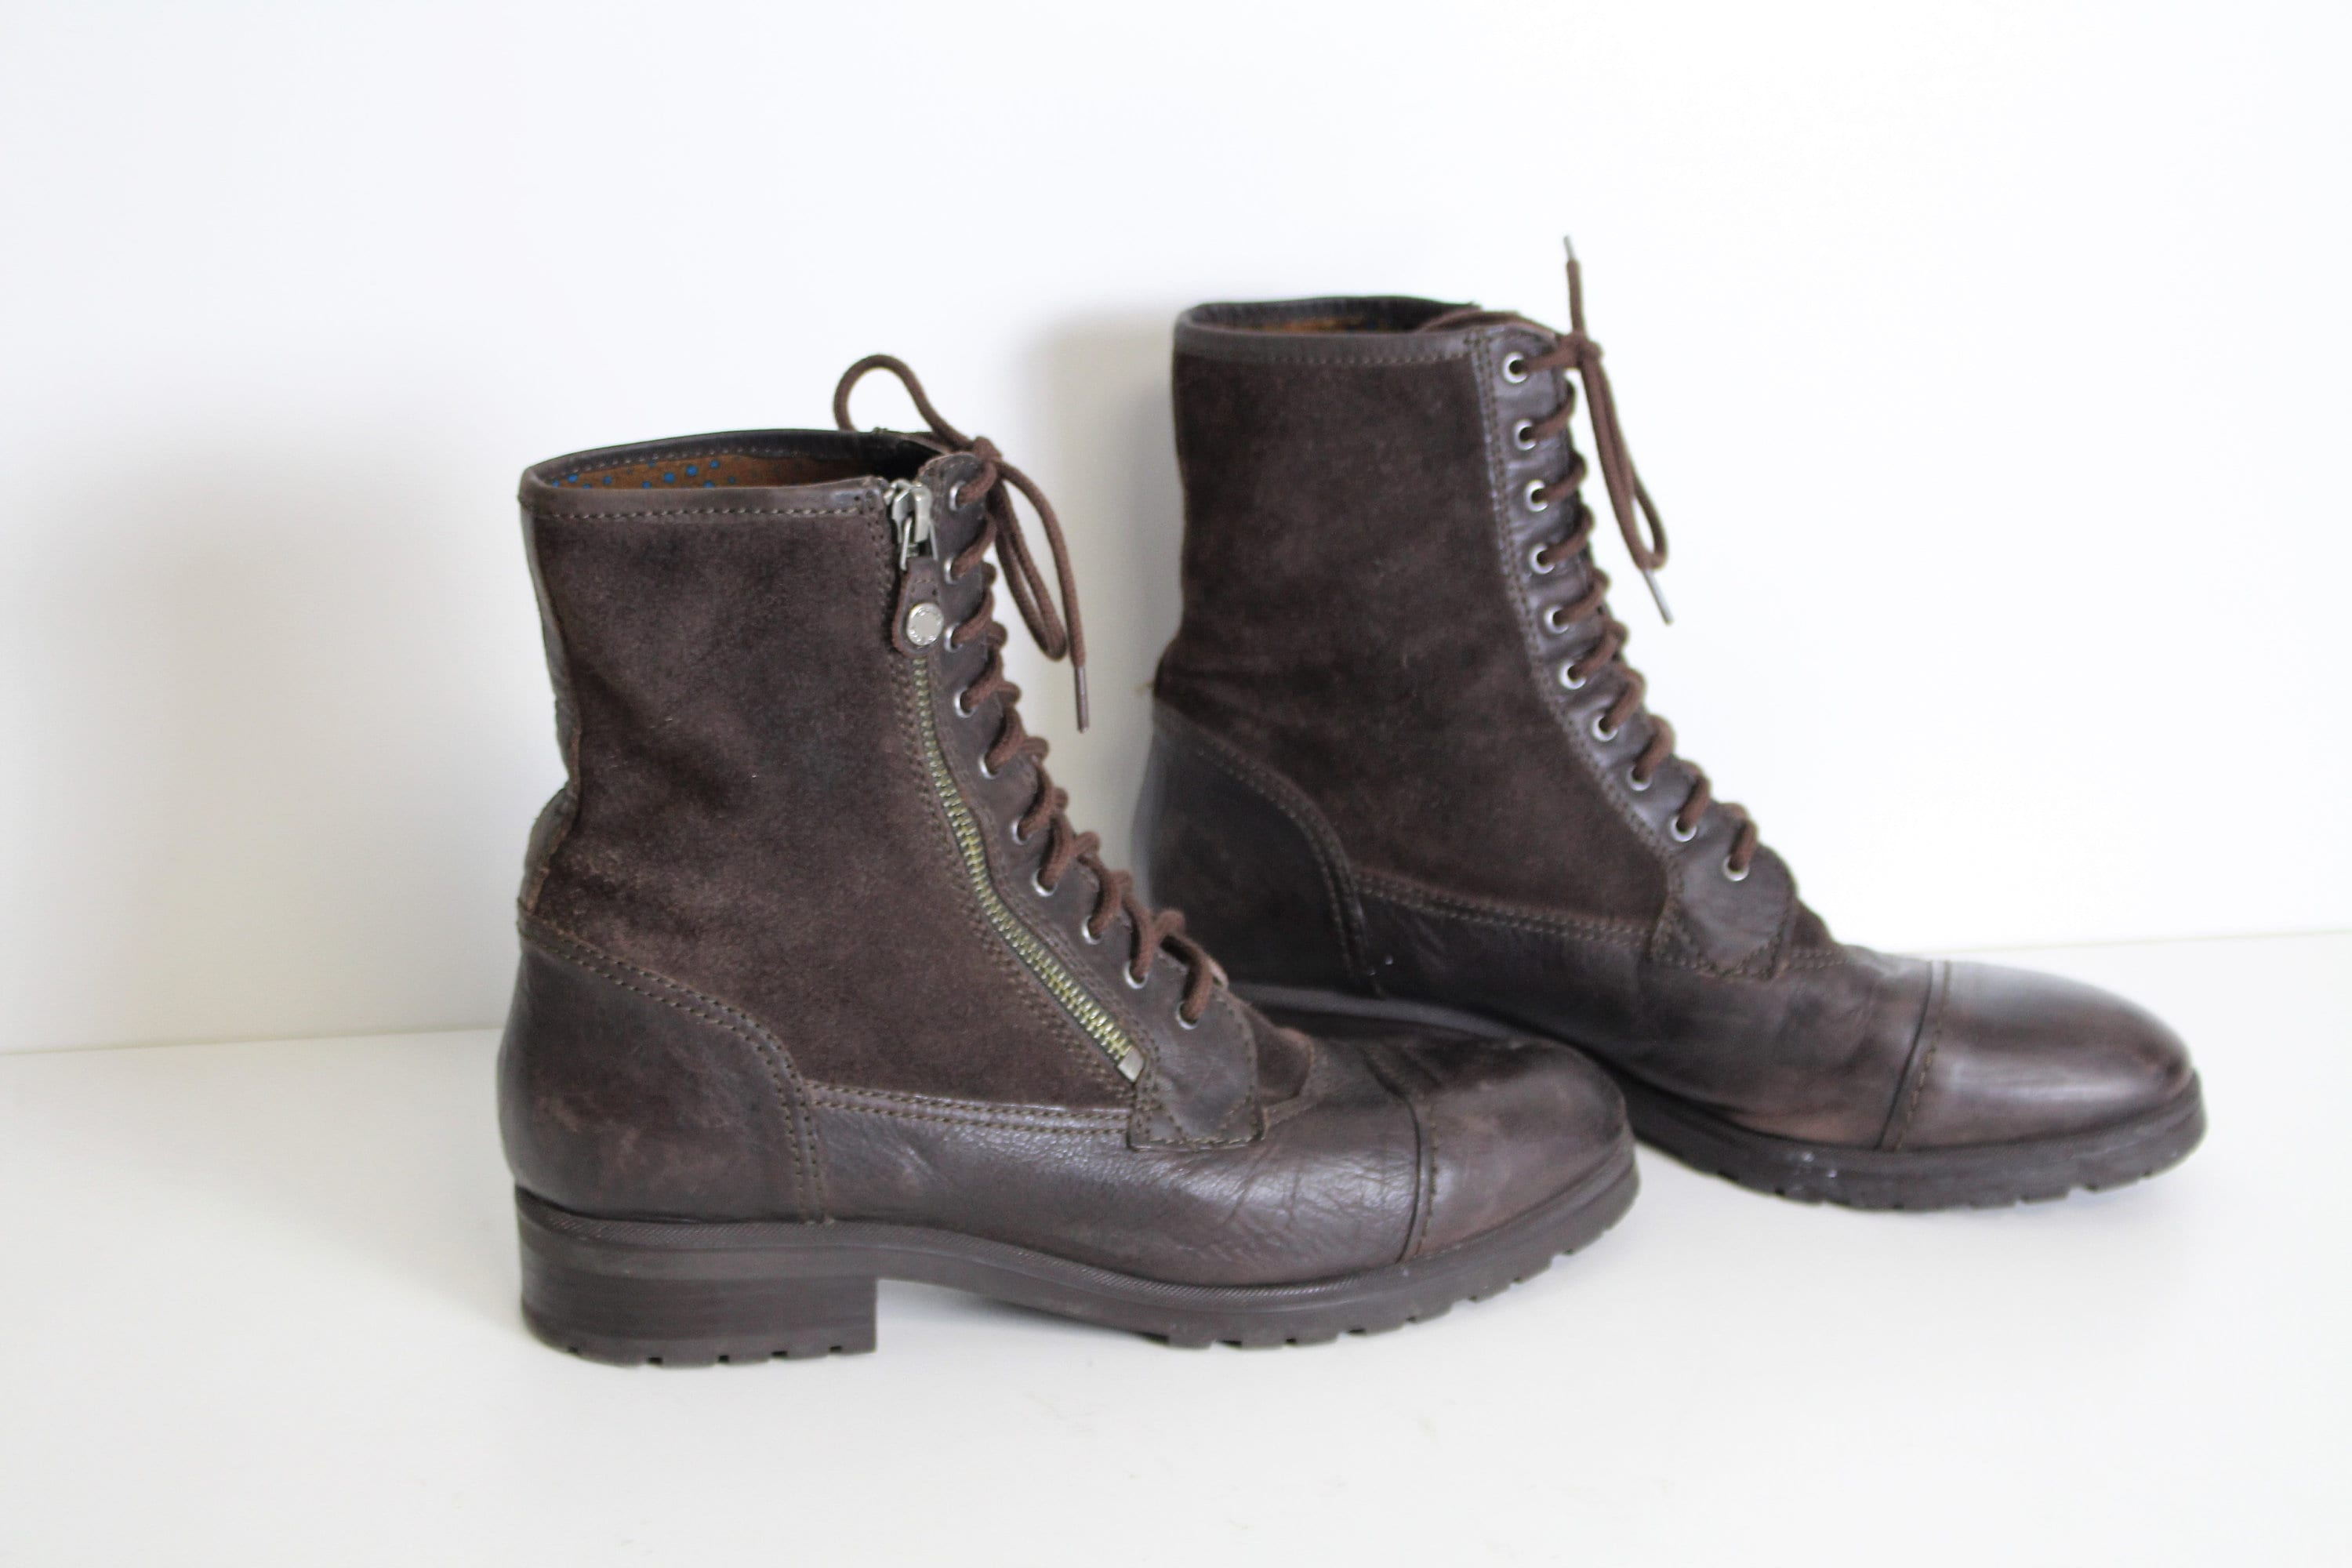 c0d30268b0e42 Brown Suede Chukka Boots GEOX Dark Brown Lace up Ankle Combat Military  Boots Round Toe Size Eur 41 US 10,5